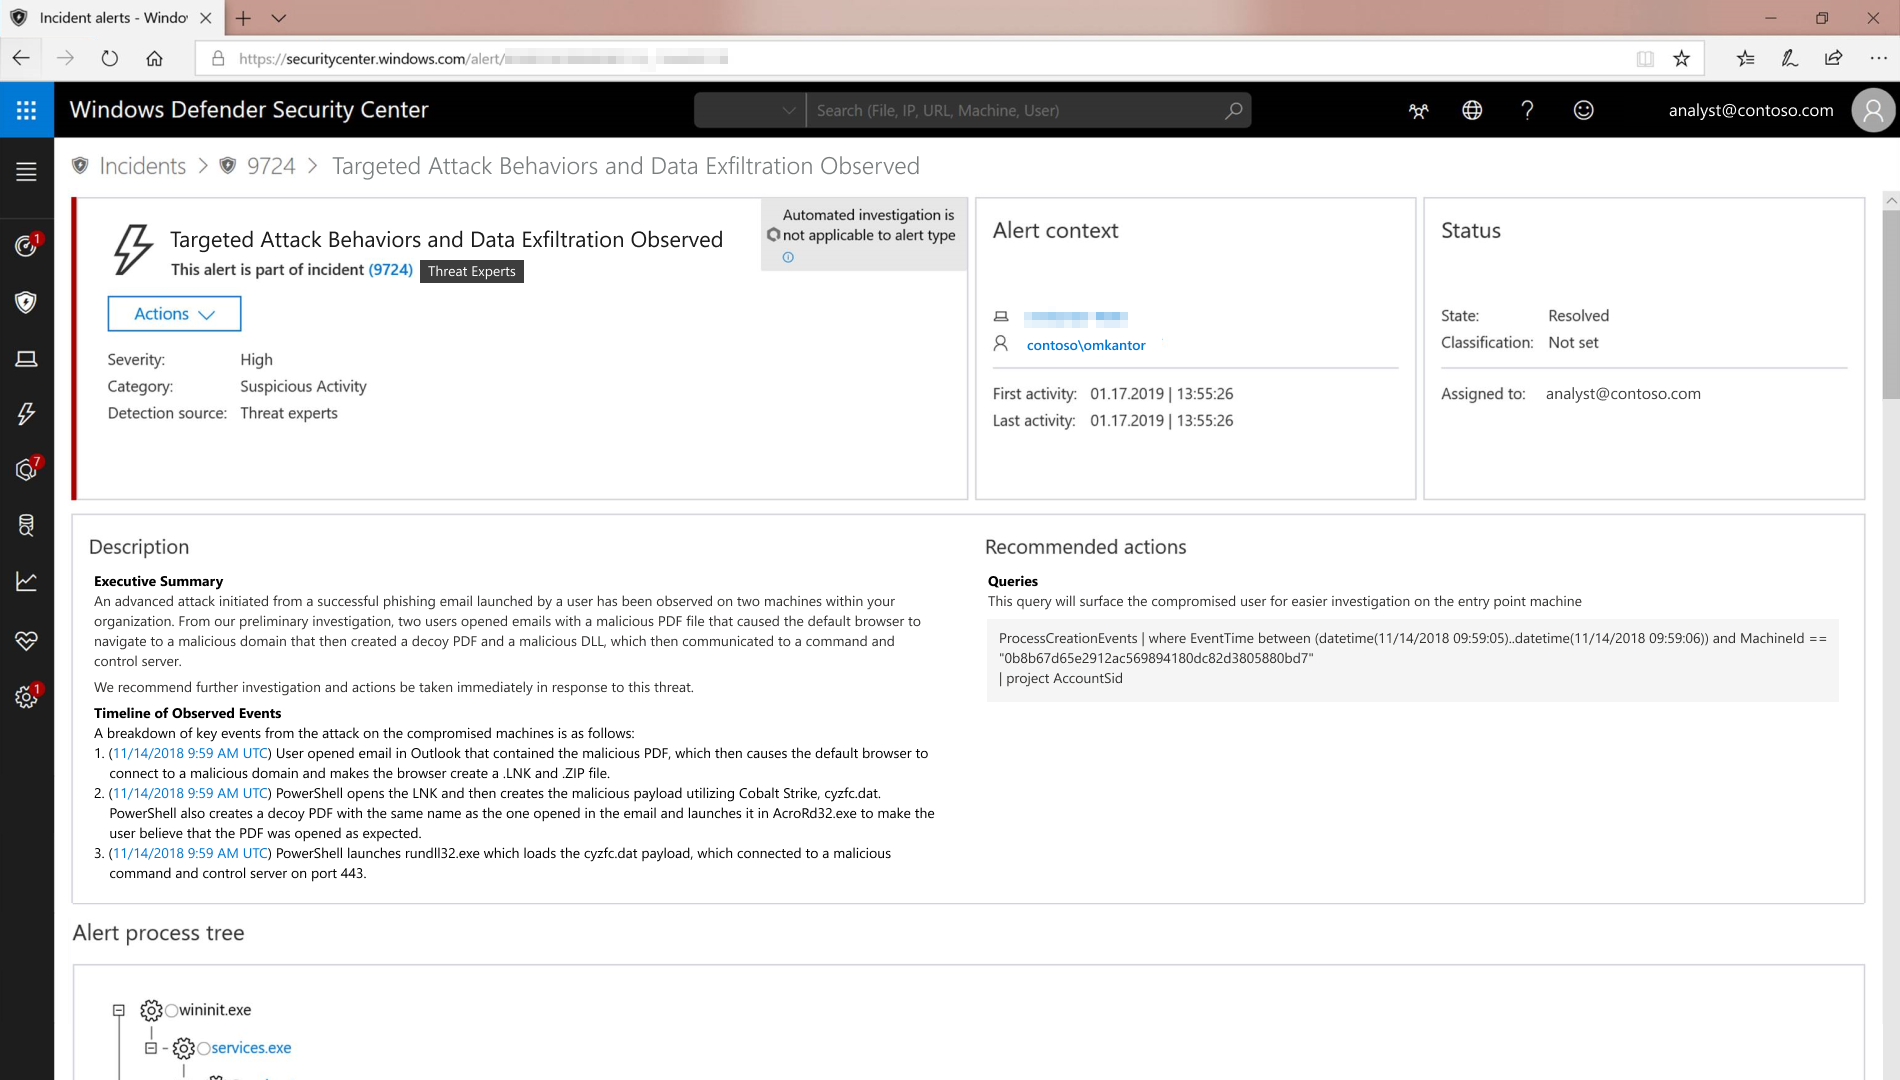 Custom Threat Experts alert in Windows Defender Security Center